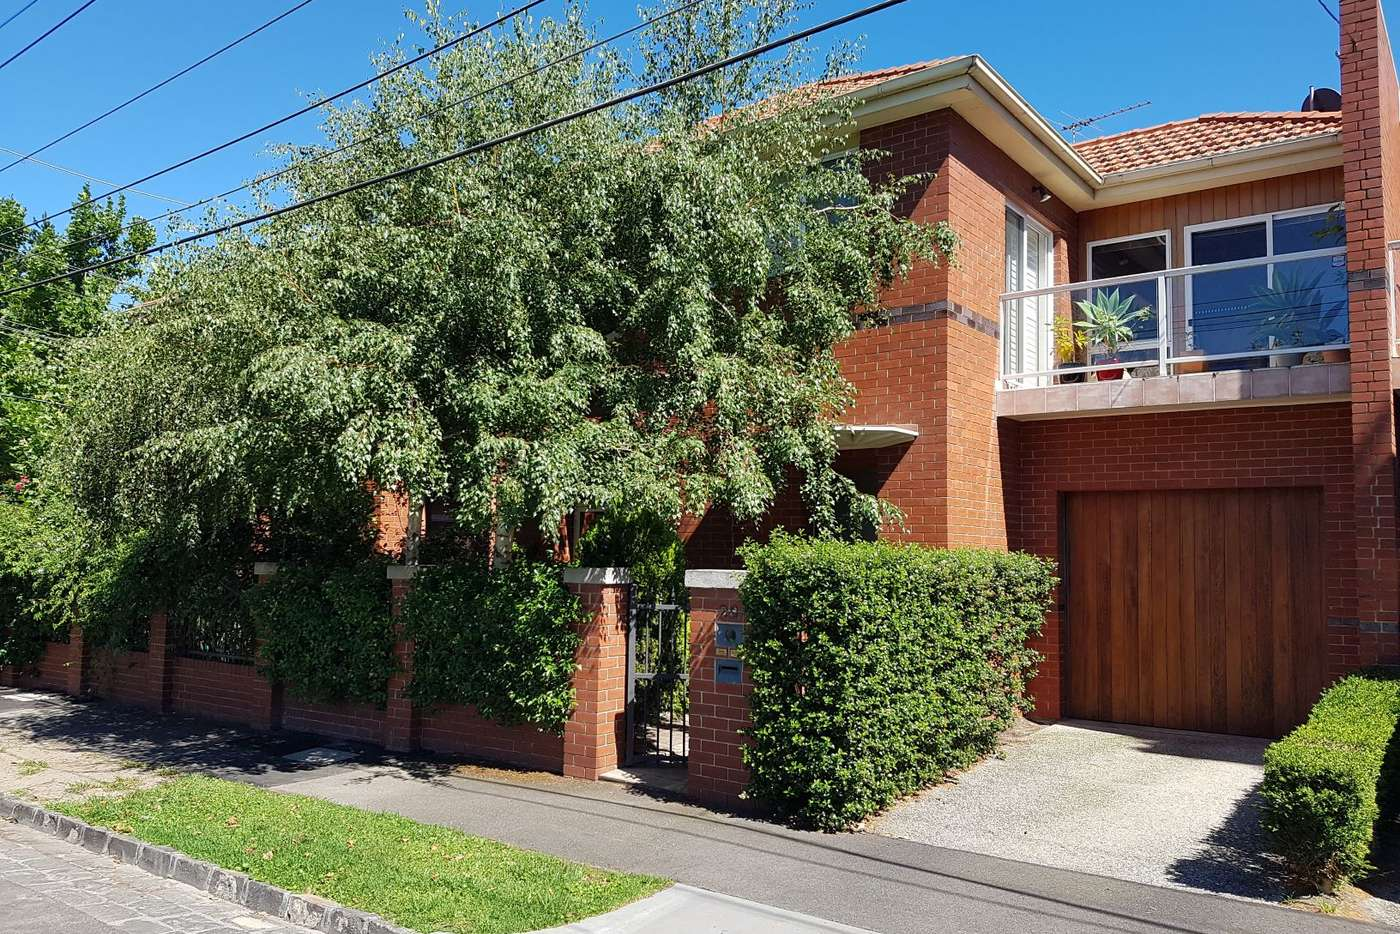 Main view of Homely townhouse listing, 28 Heaton Avenue, Elwood VIC 3184